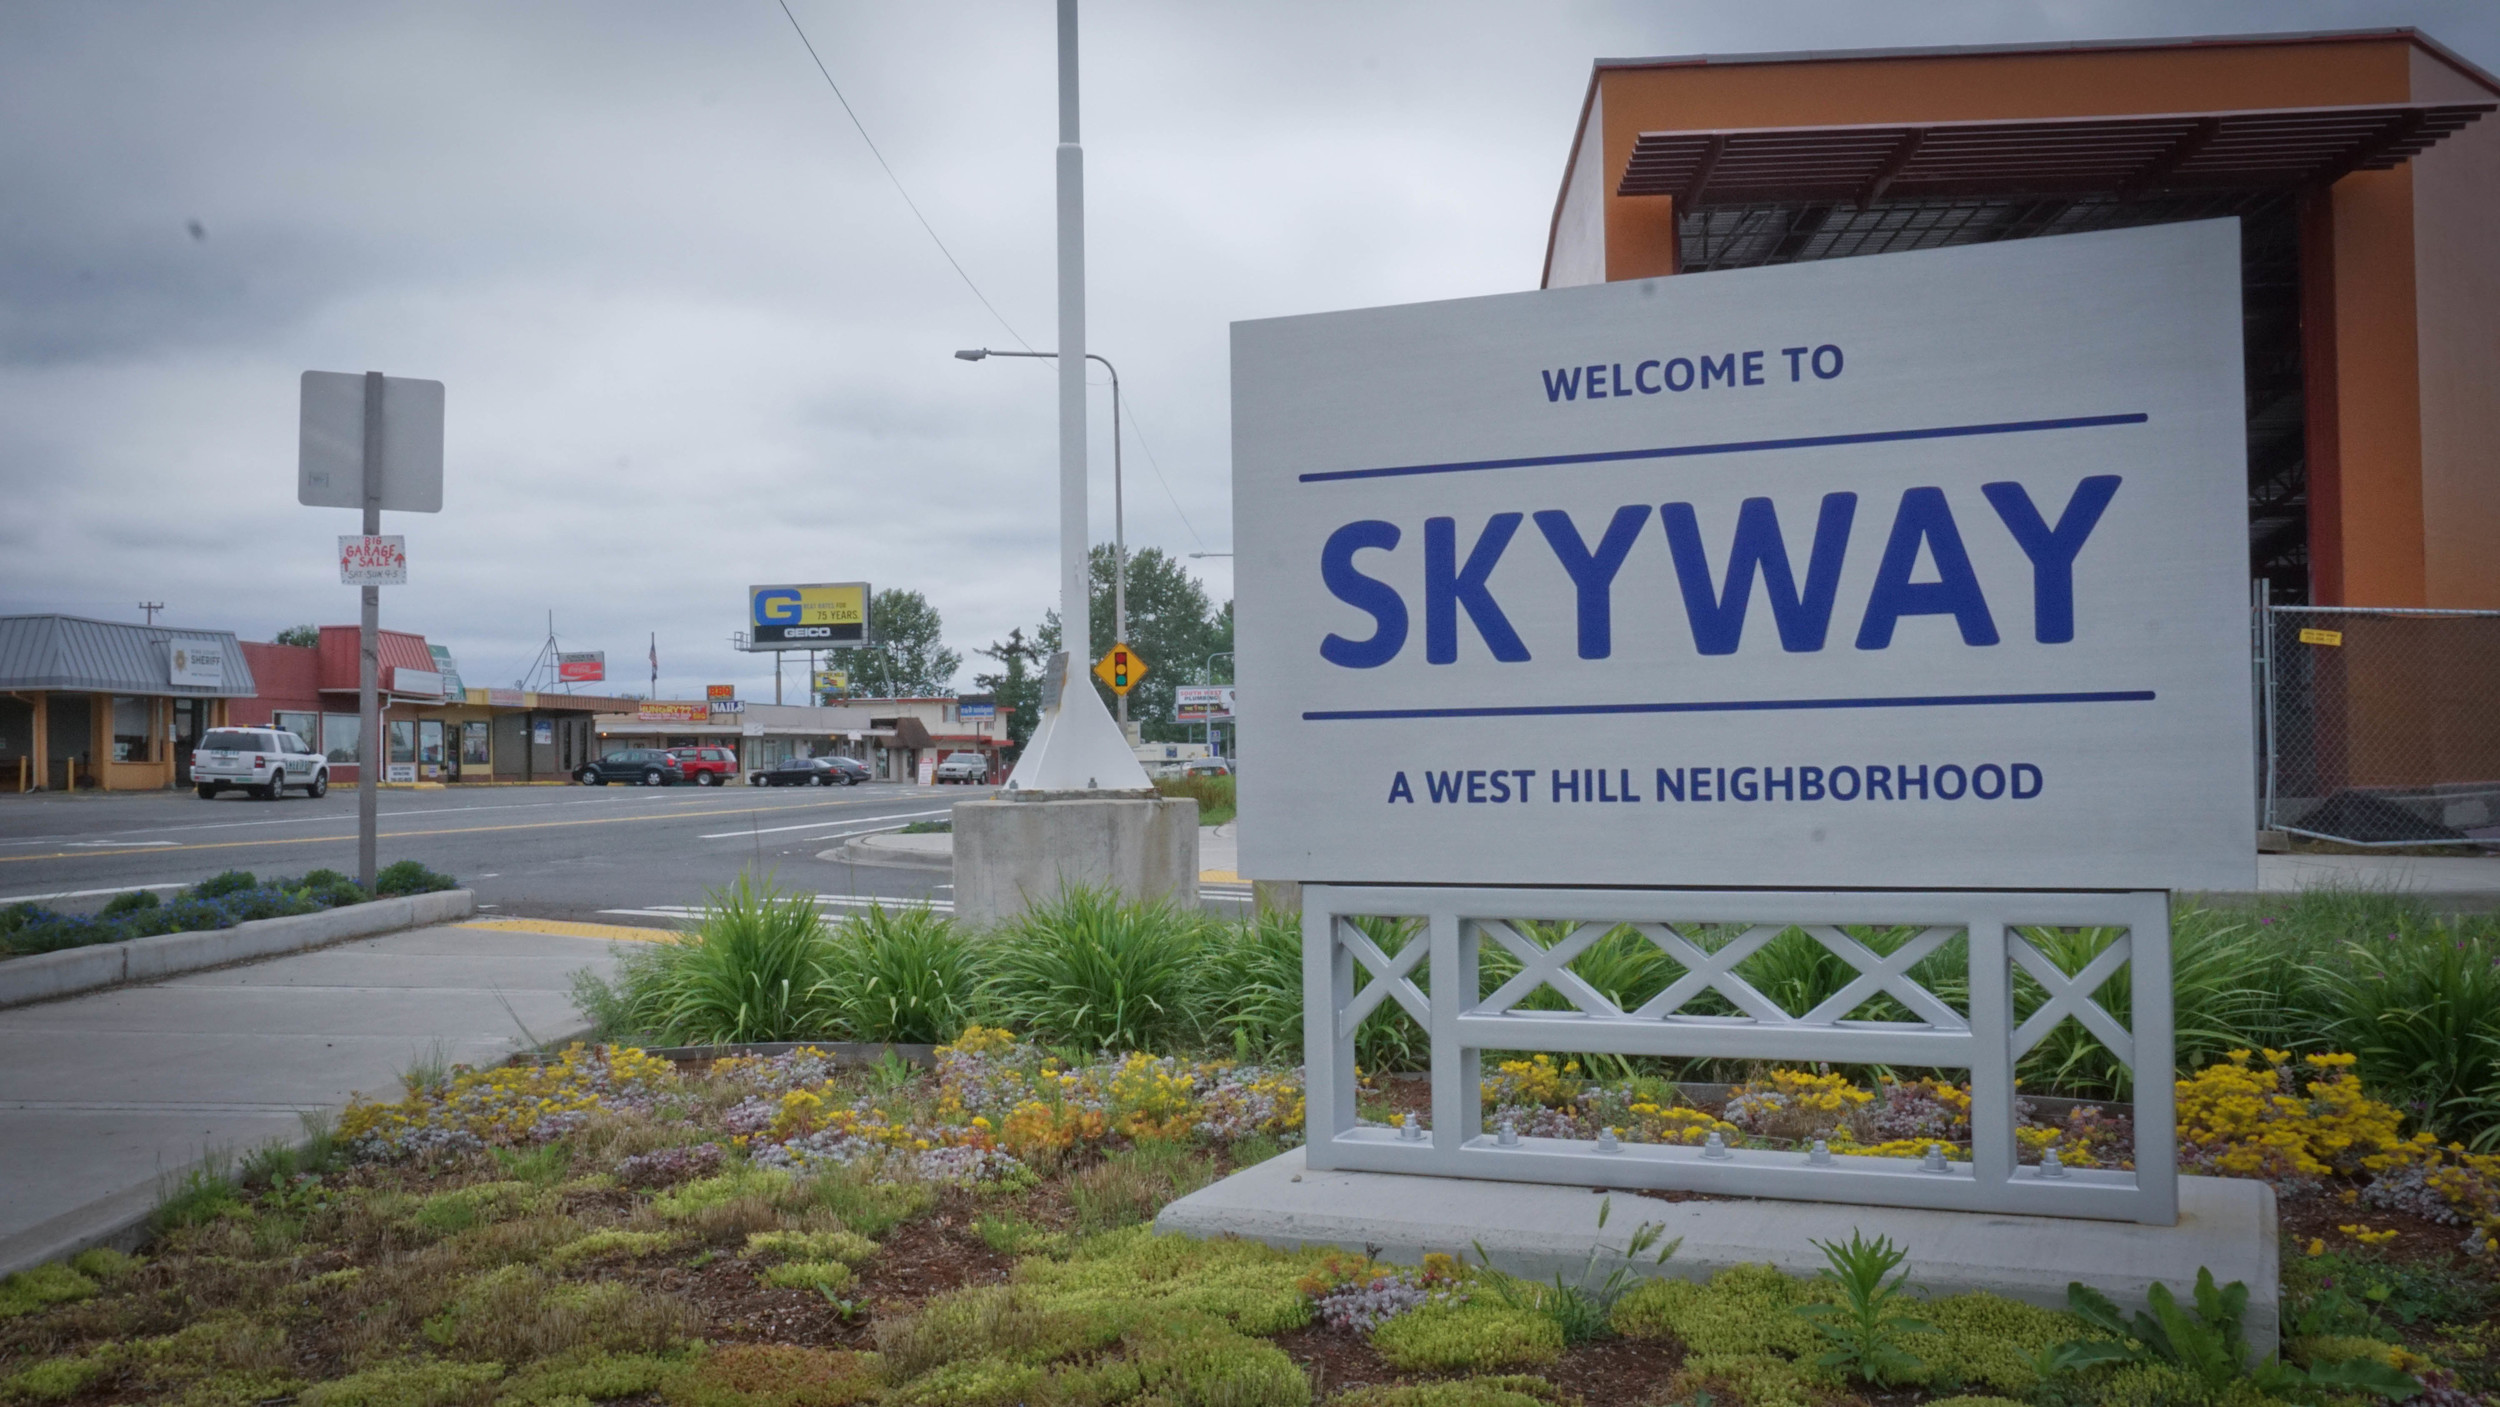 Why Skyway?